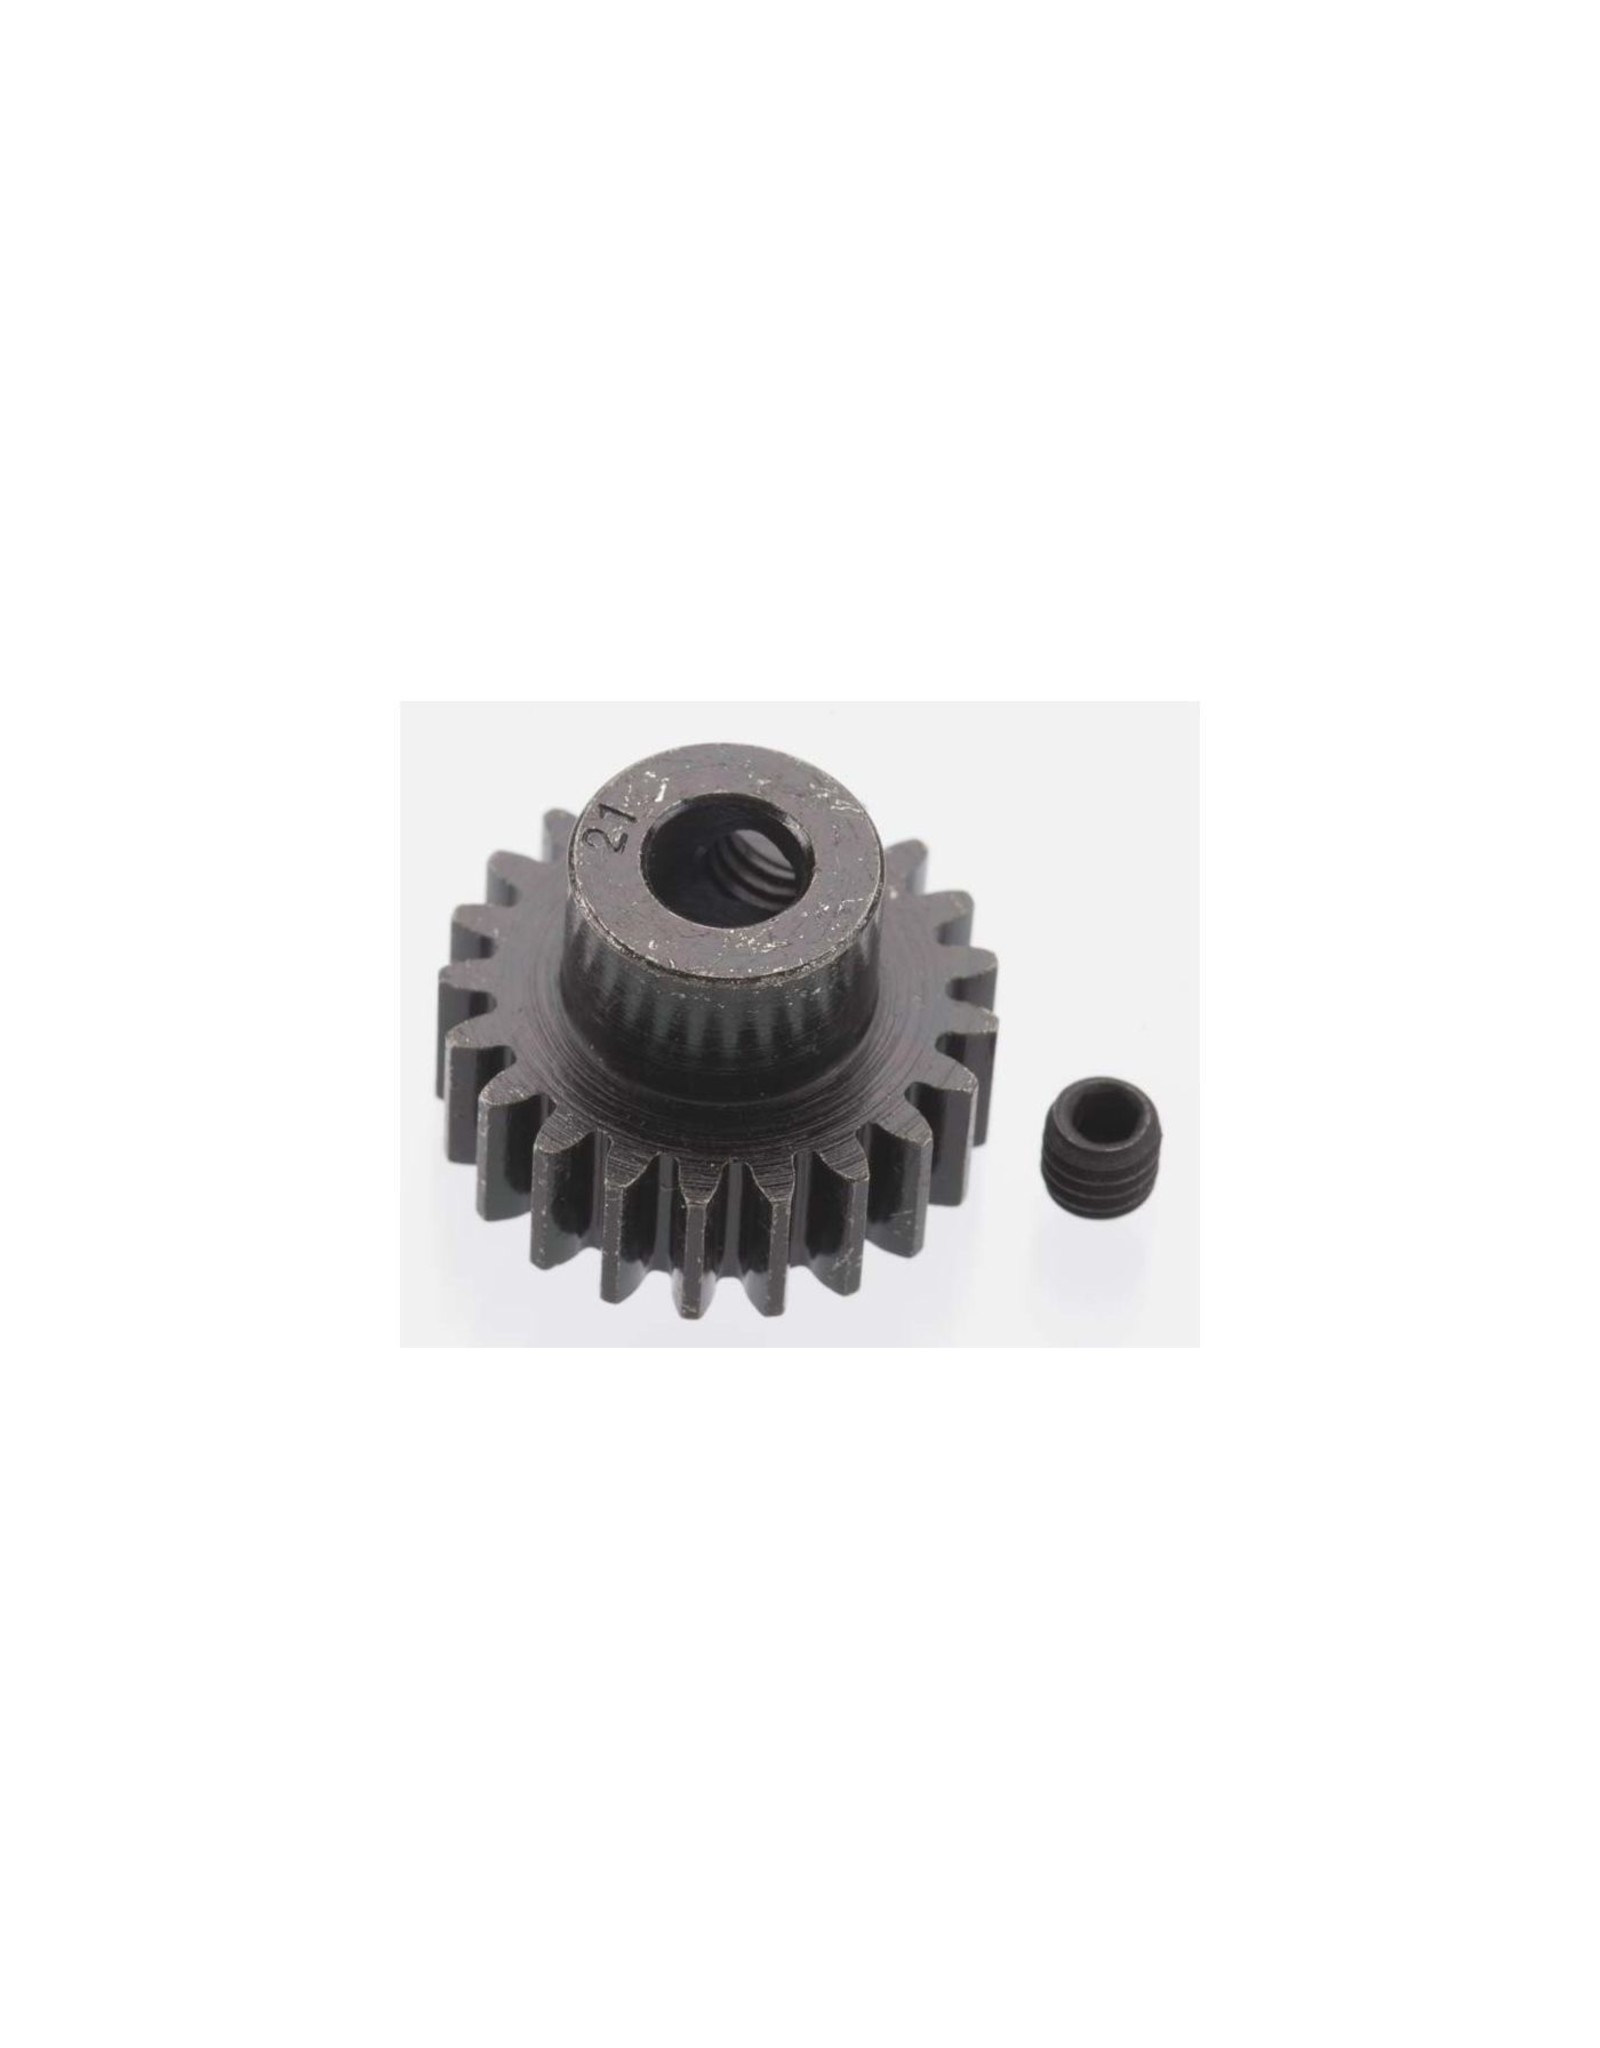 Robinson Racing Products (RRP) Extra Hard 21 Tooth Blackened Steel 32p Pinion 5mm (RRP8621)